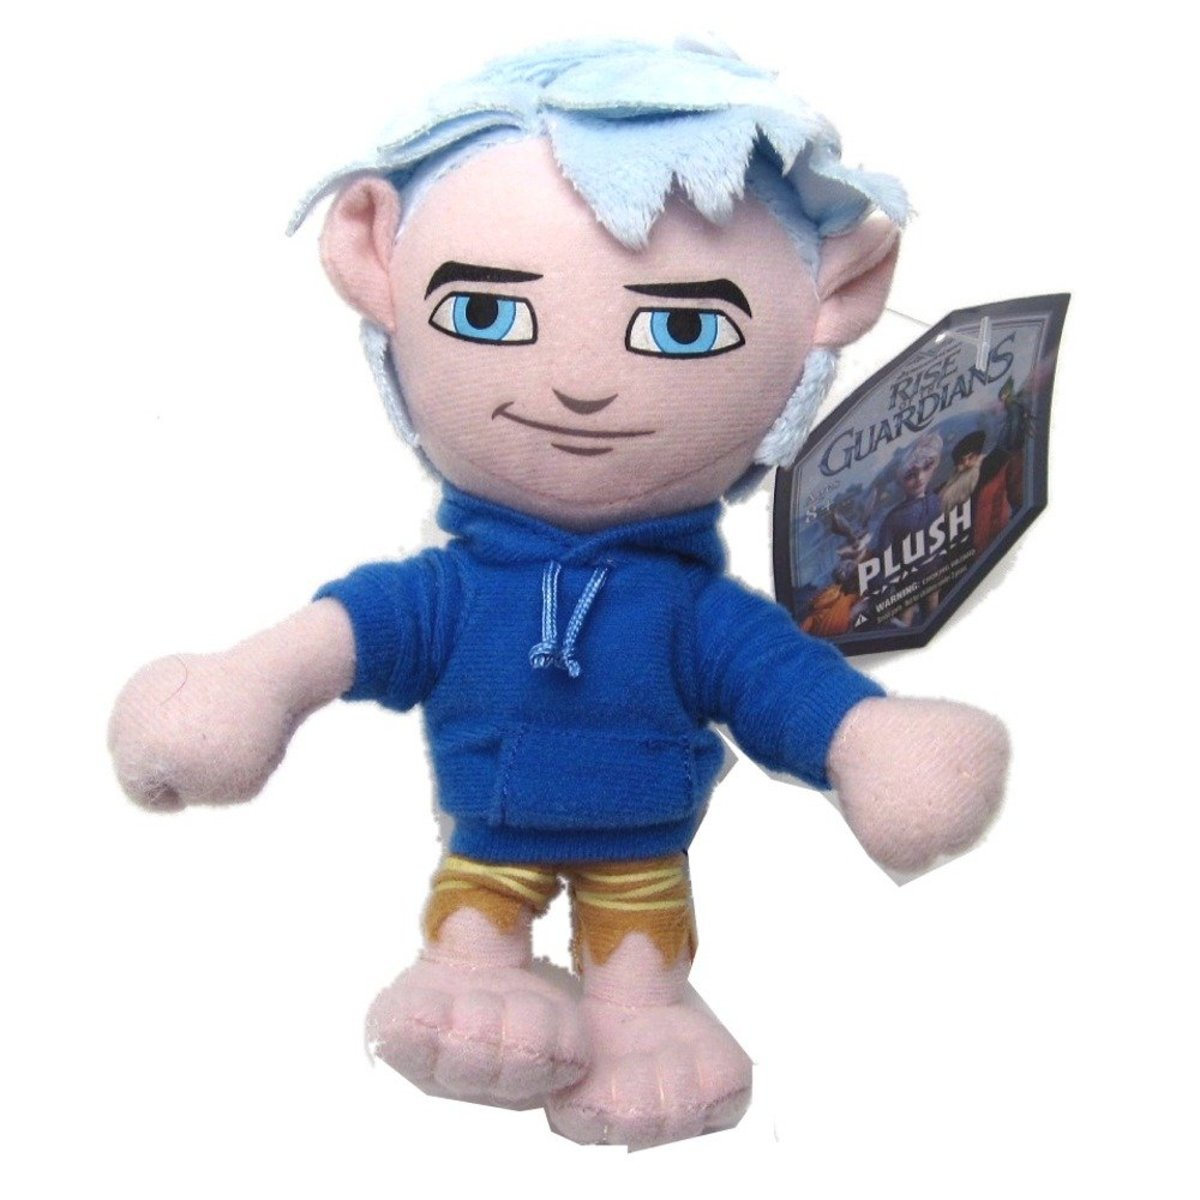 rise-of-the-guardians-toys-dolls-and-figures